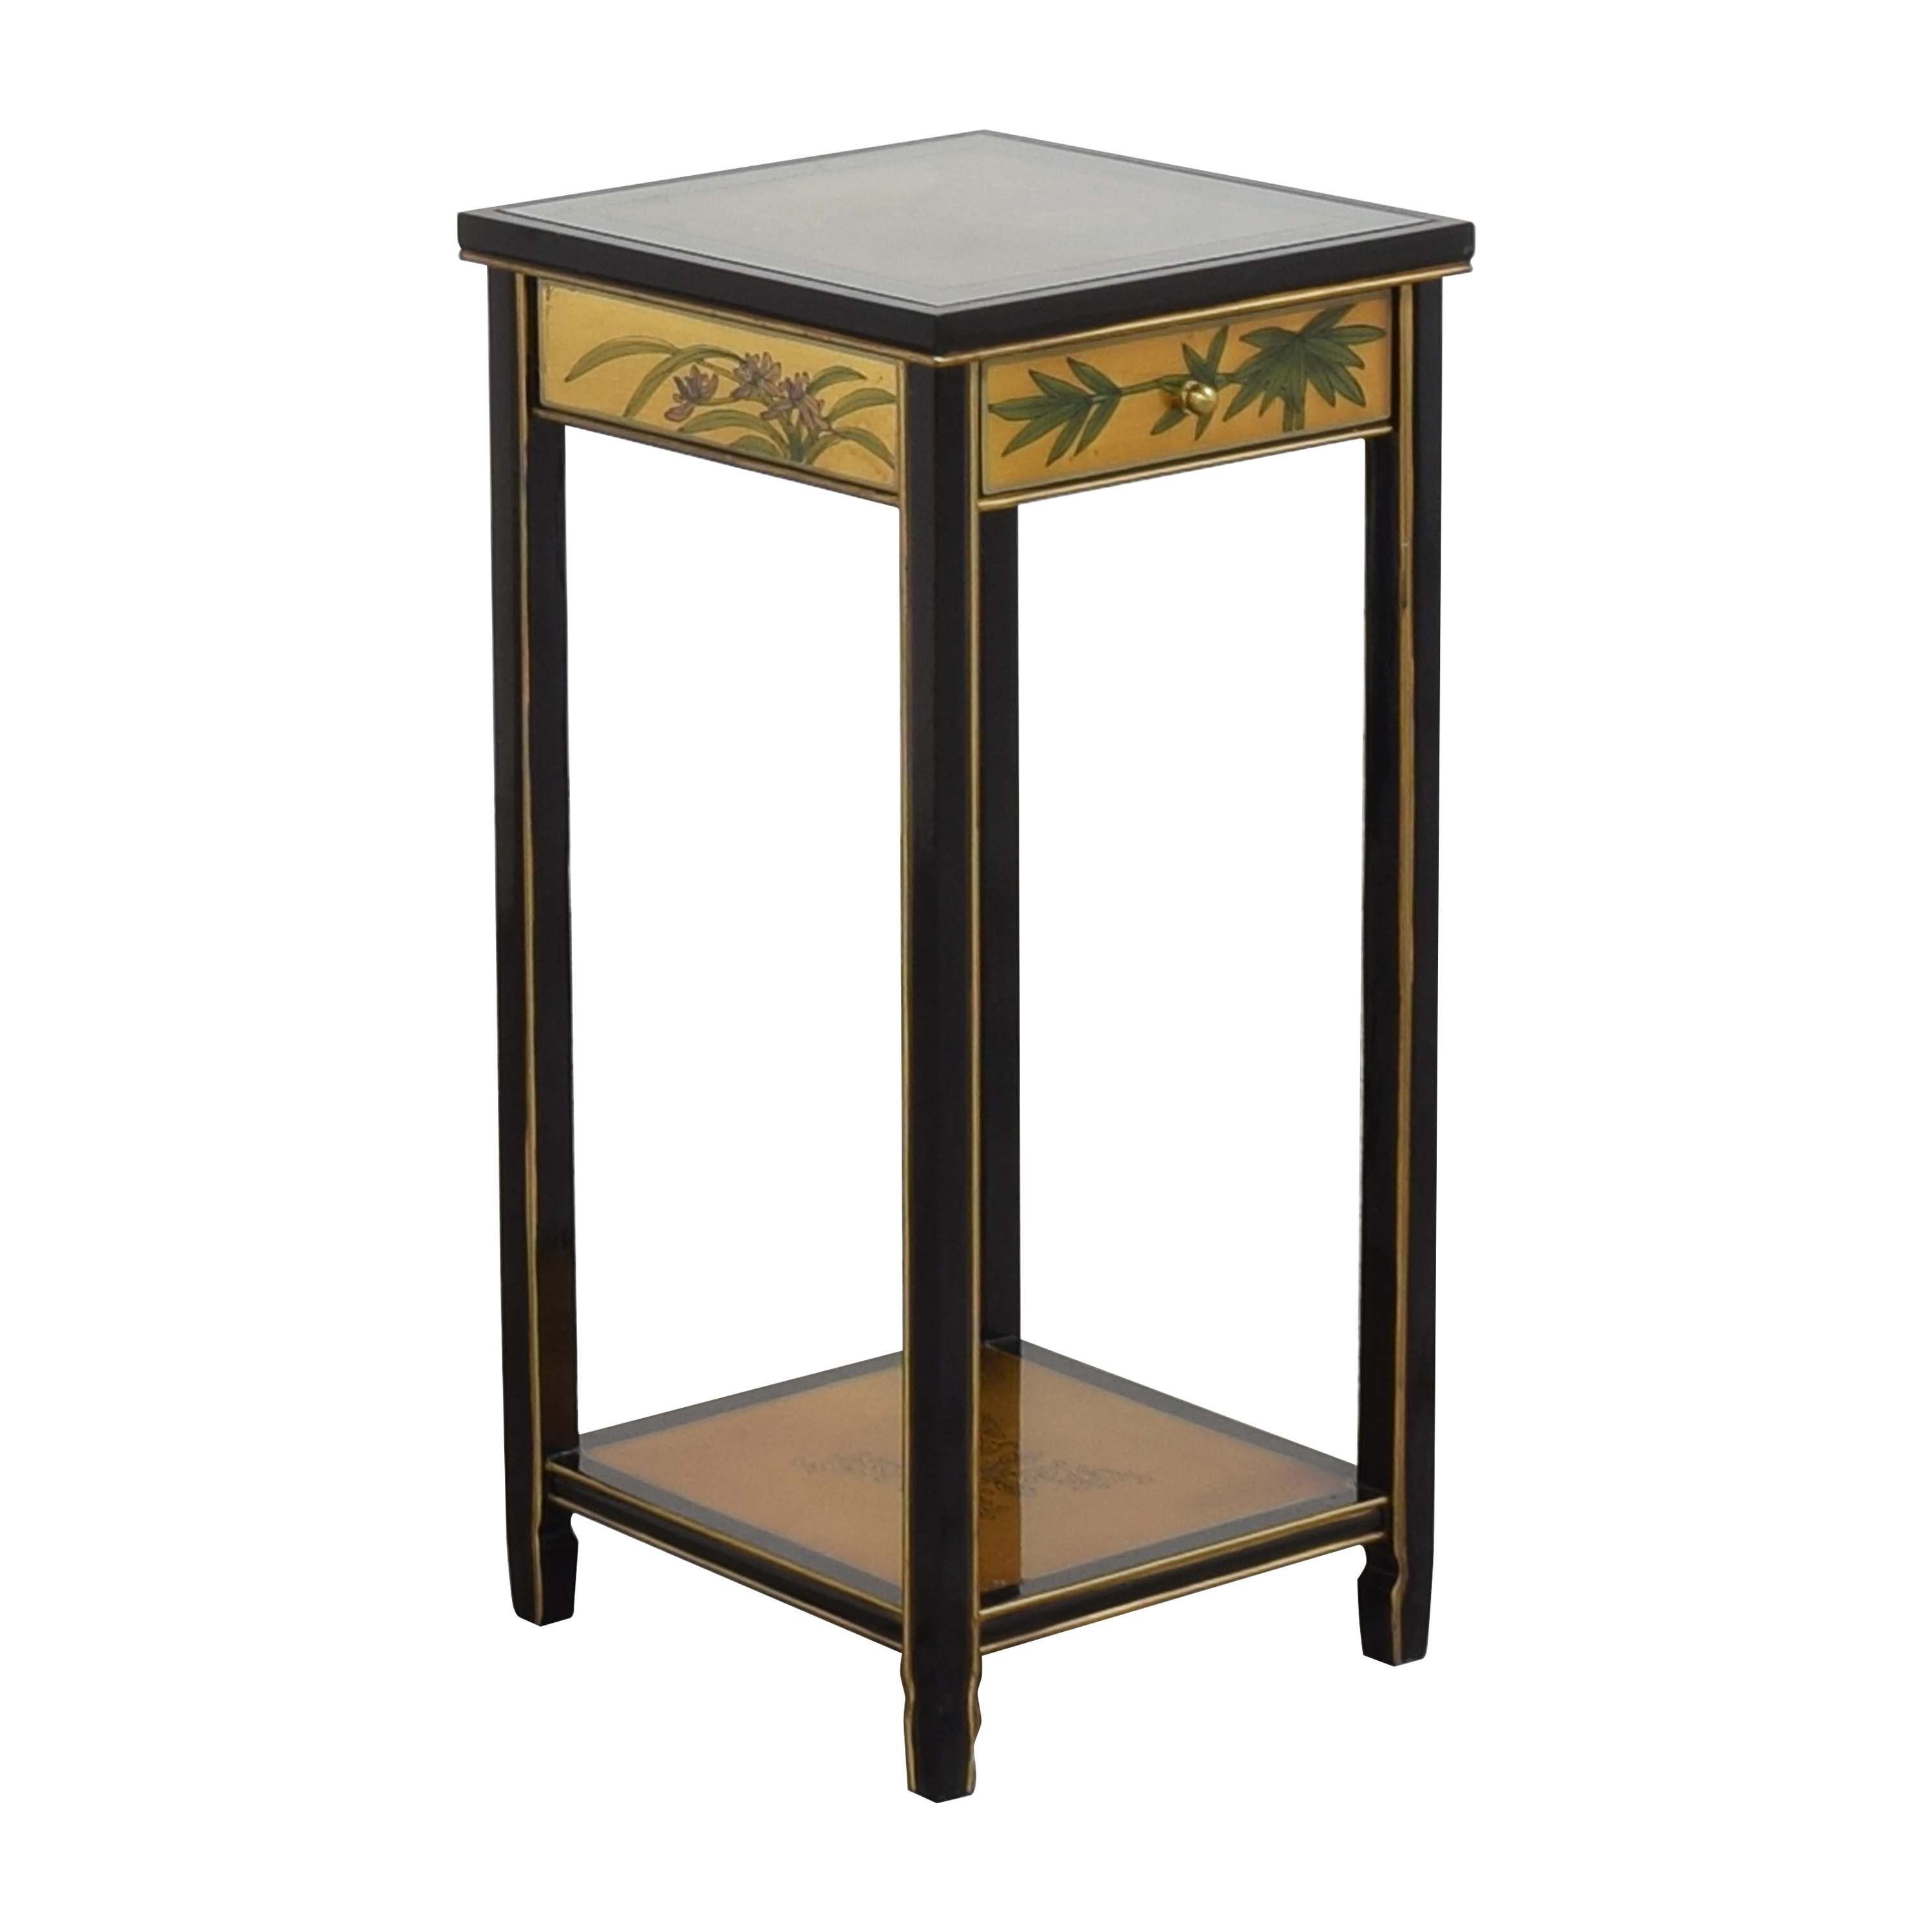 Wayfair Wayfair Tiered Plant Stand nj